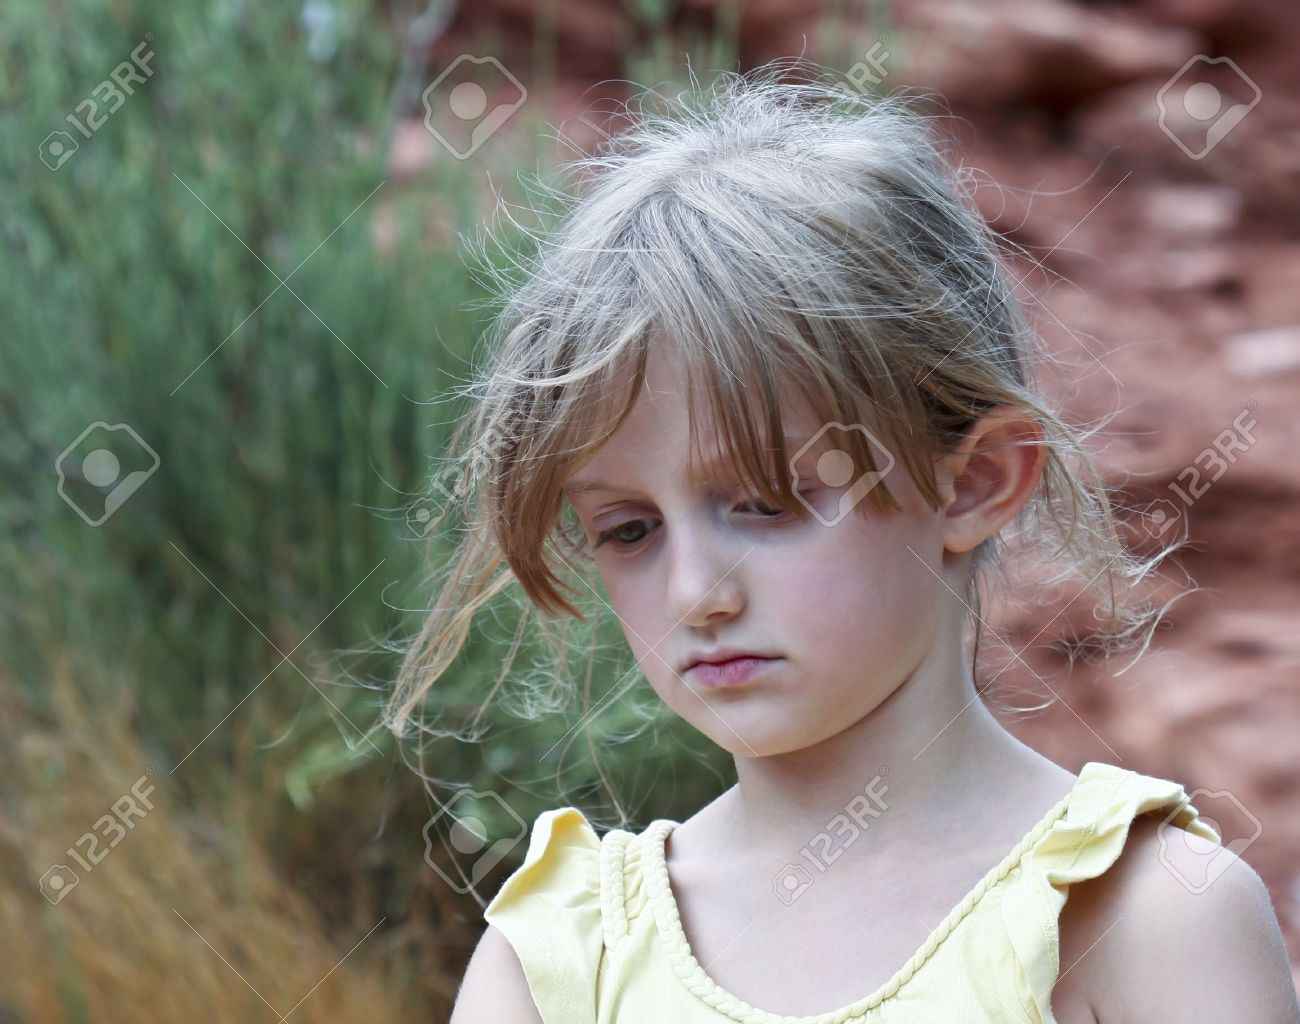 blonde little girl A Sad Little Girl with Wispy Blonde Hair in a Yellow Top Stock Photo -  10226740